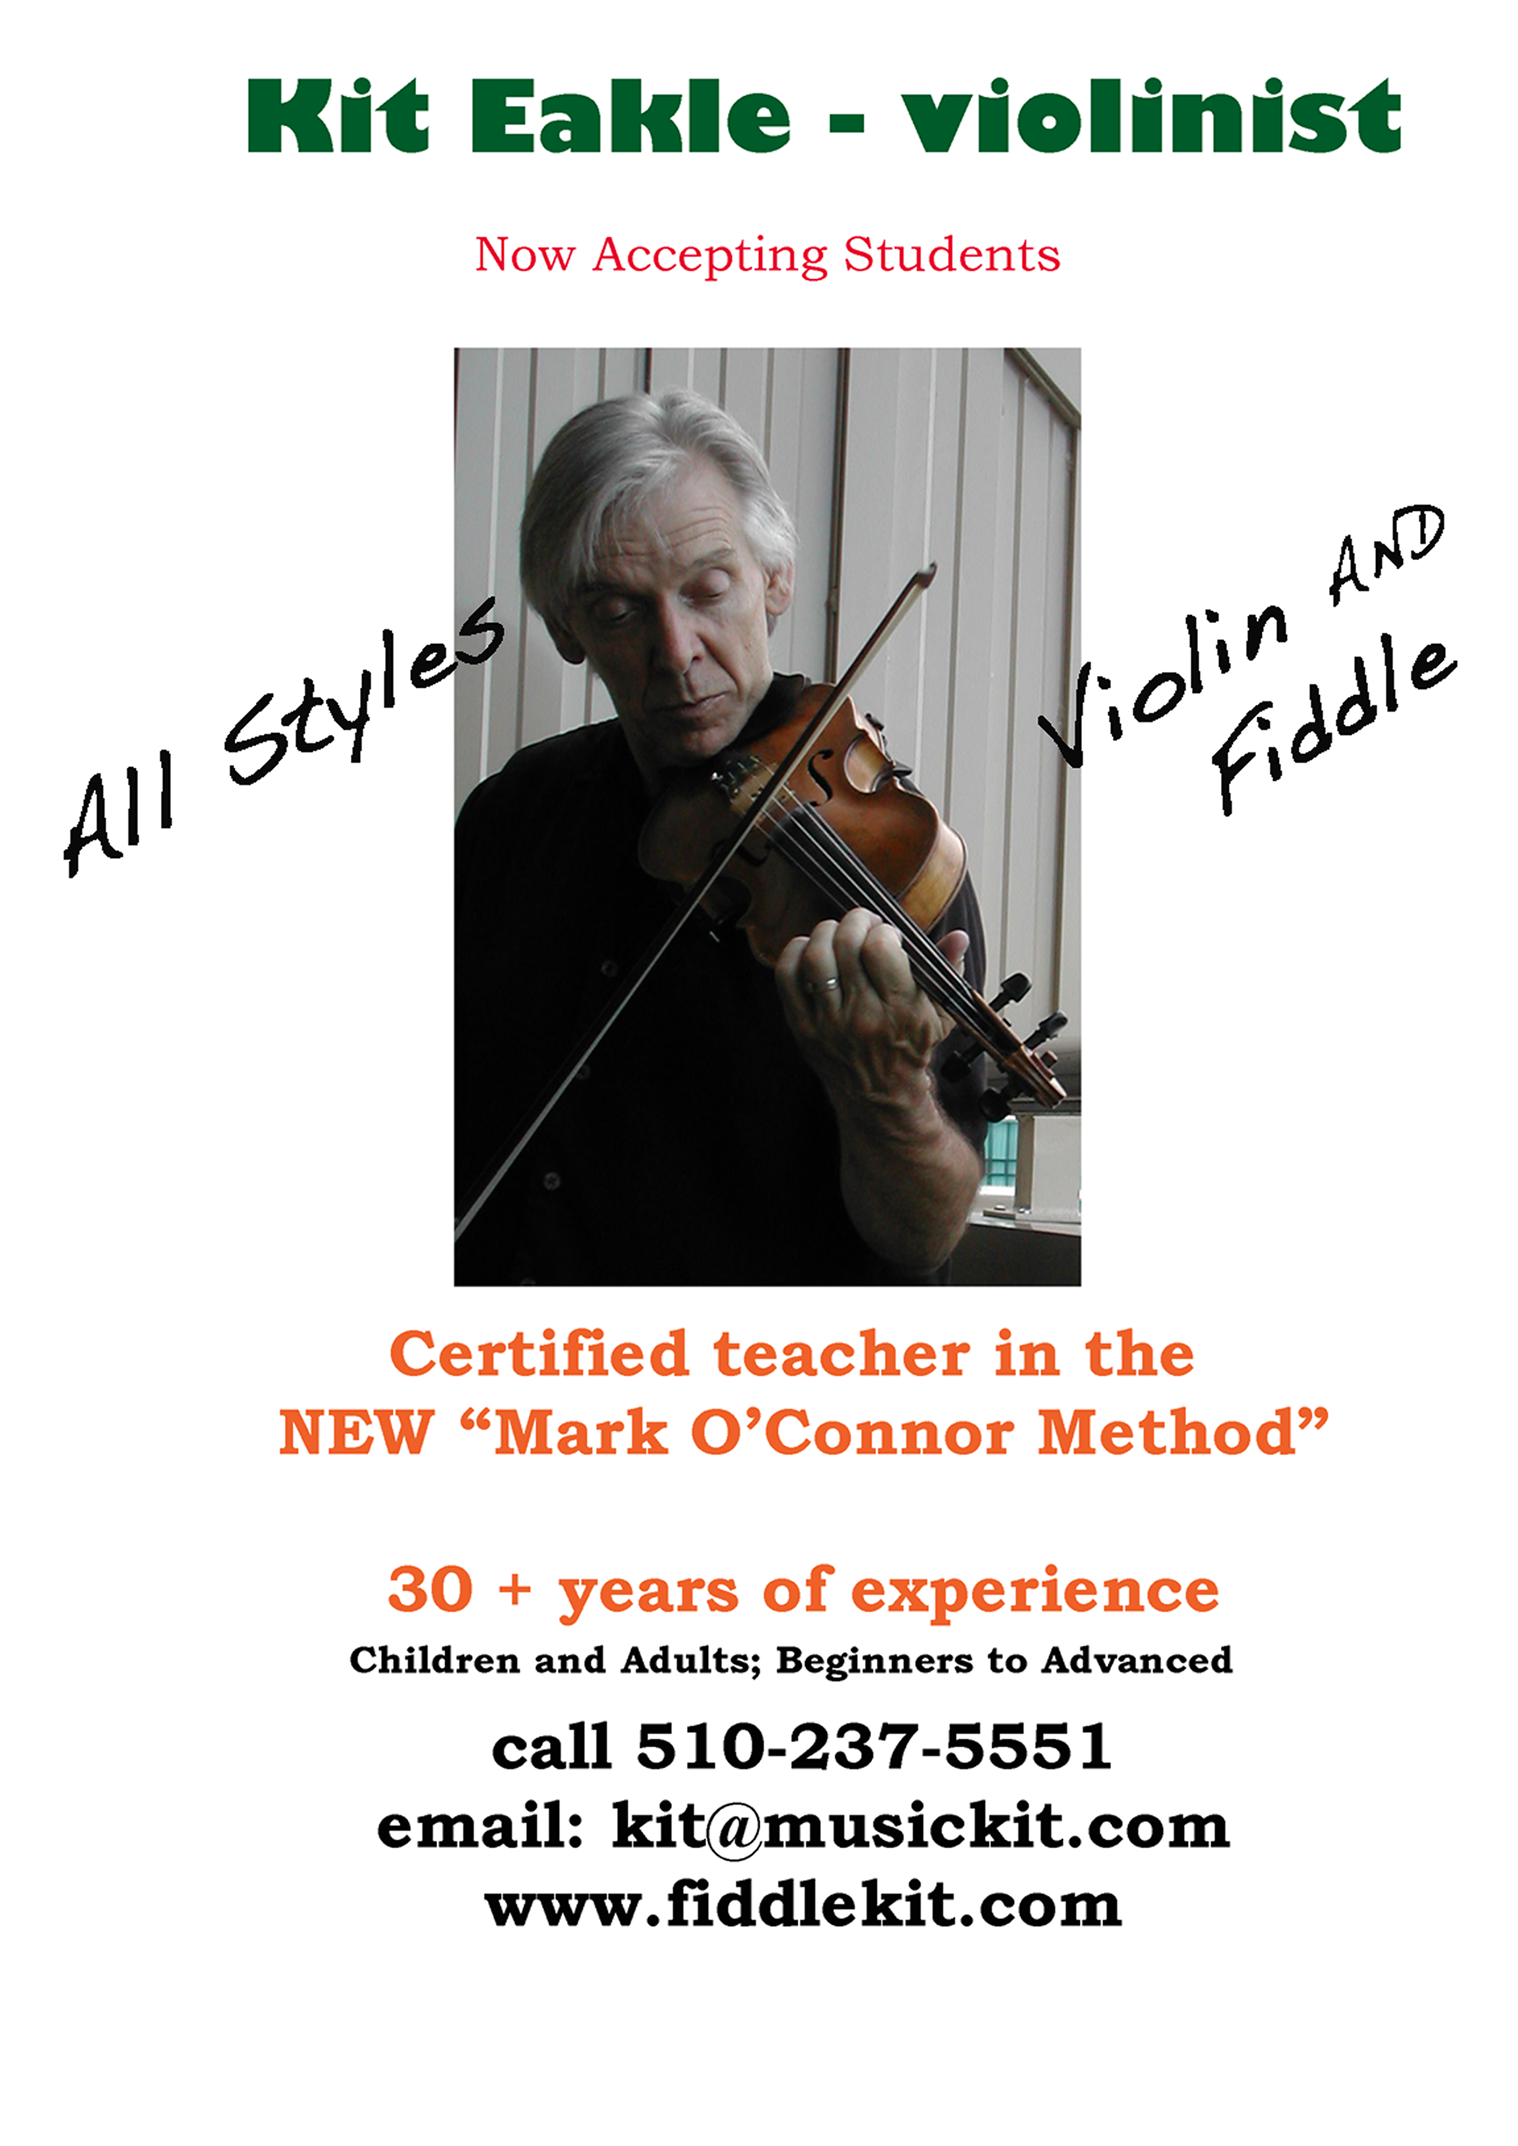 Kit Eakle violin teacher